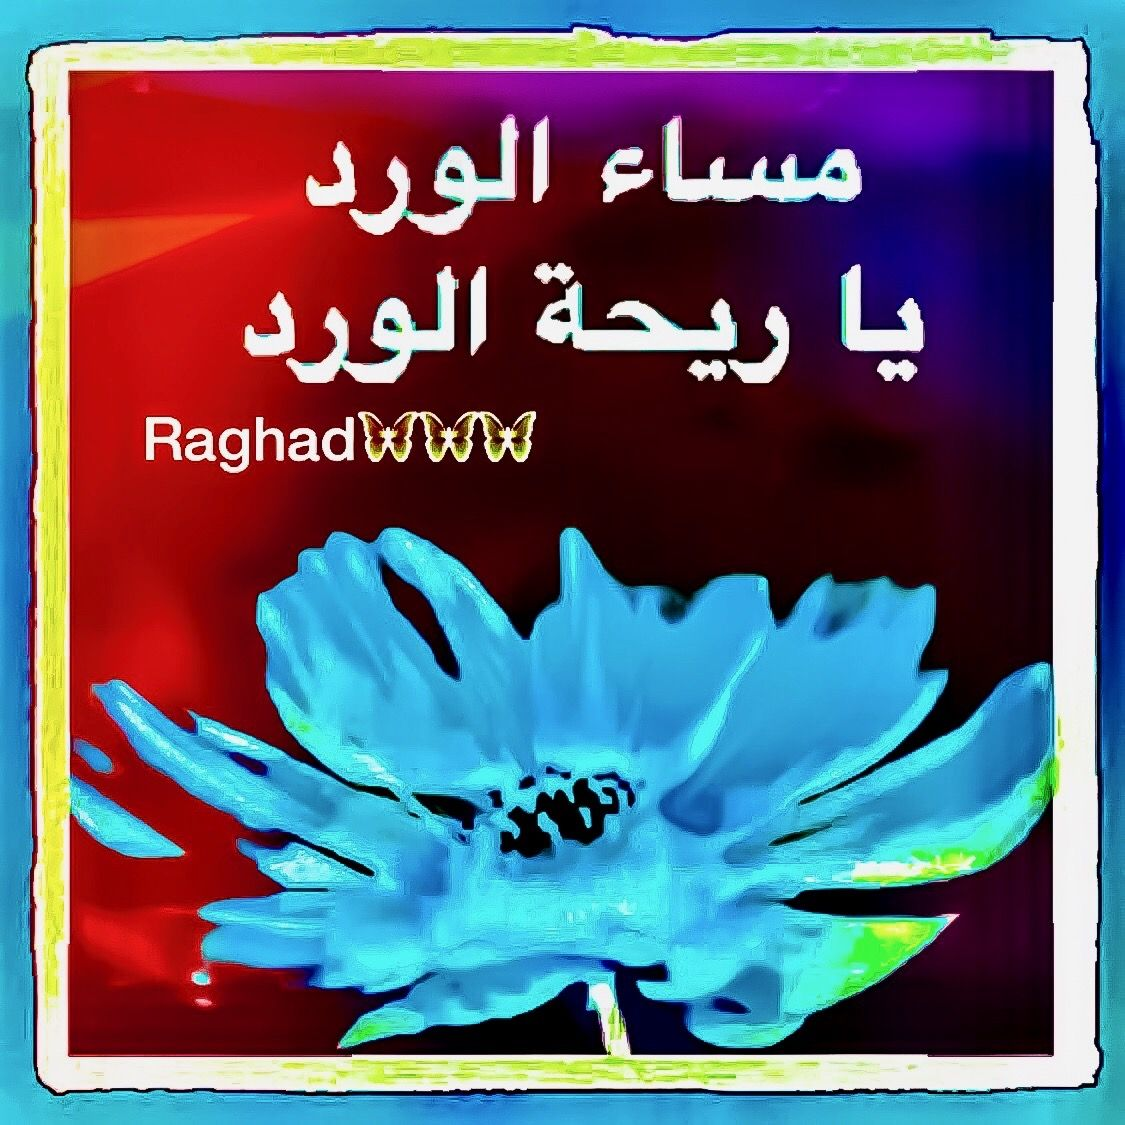 DesertRose,;,مساء الورد,;, | Good;Evening;&Good;Night; | Night